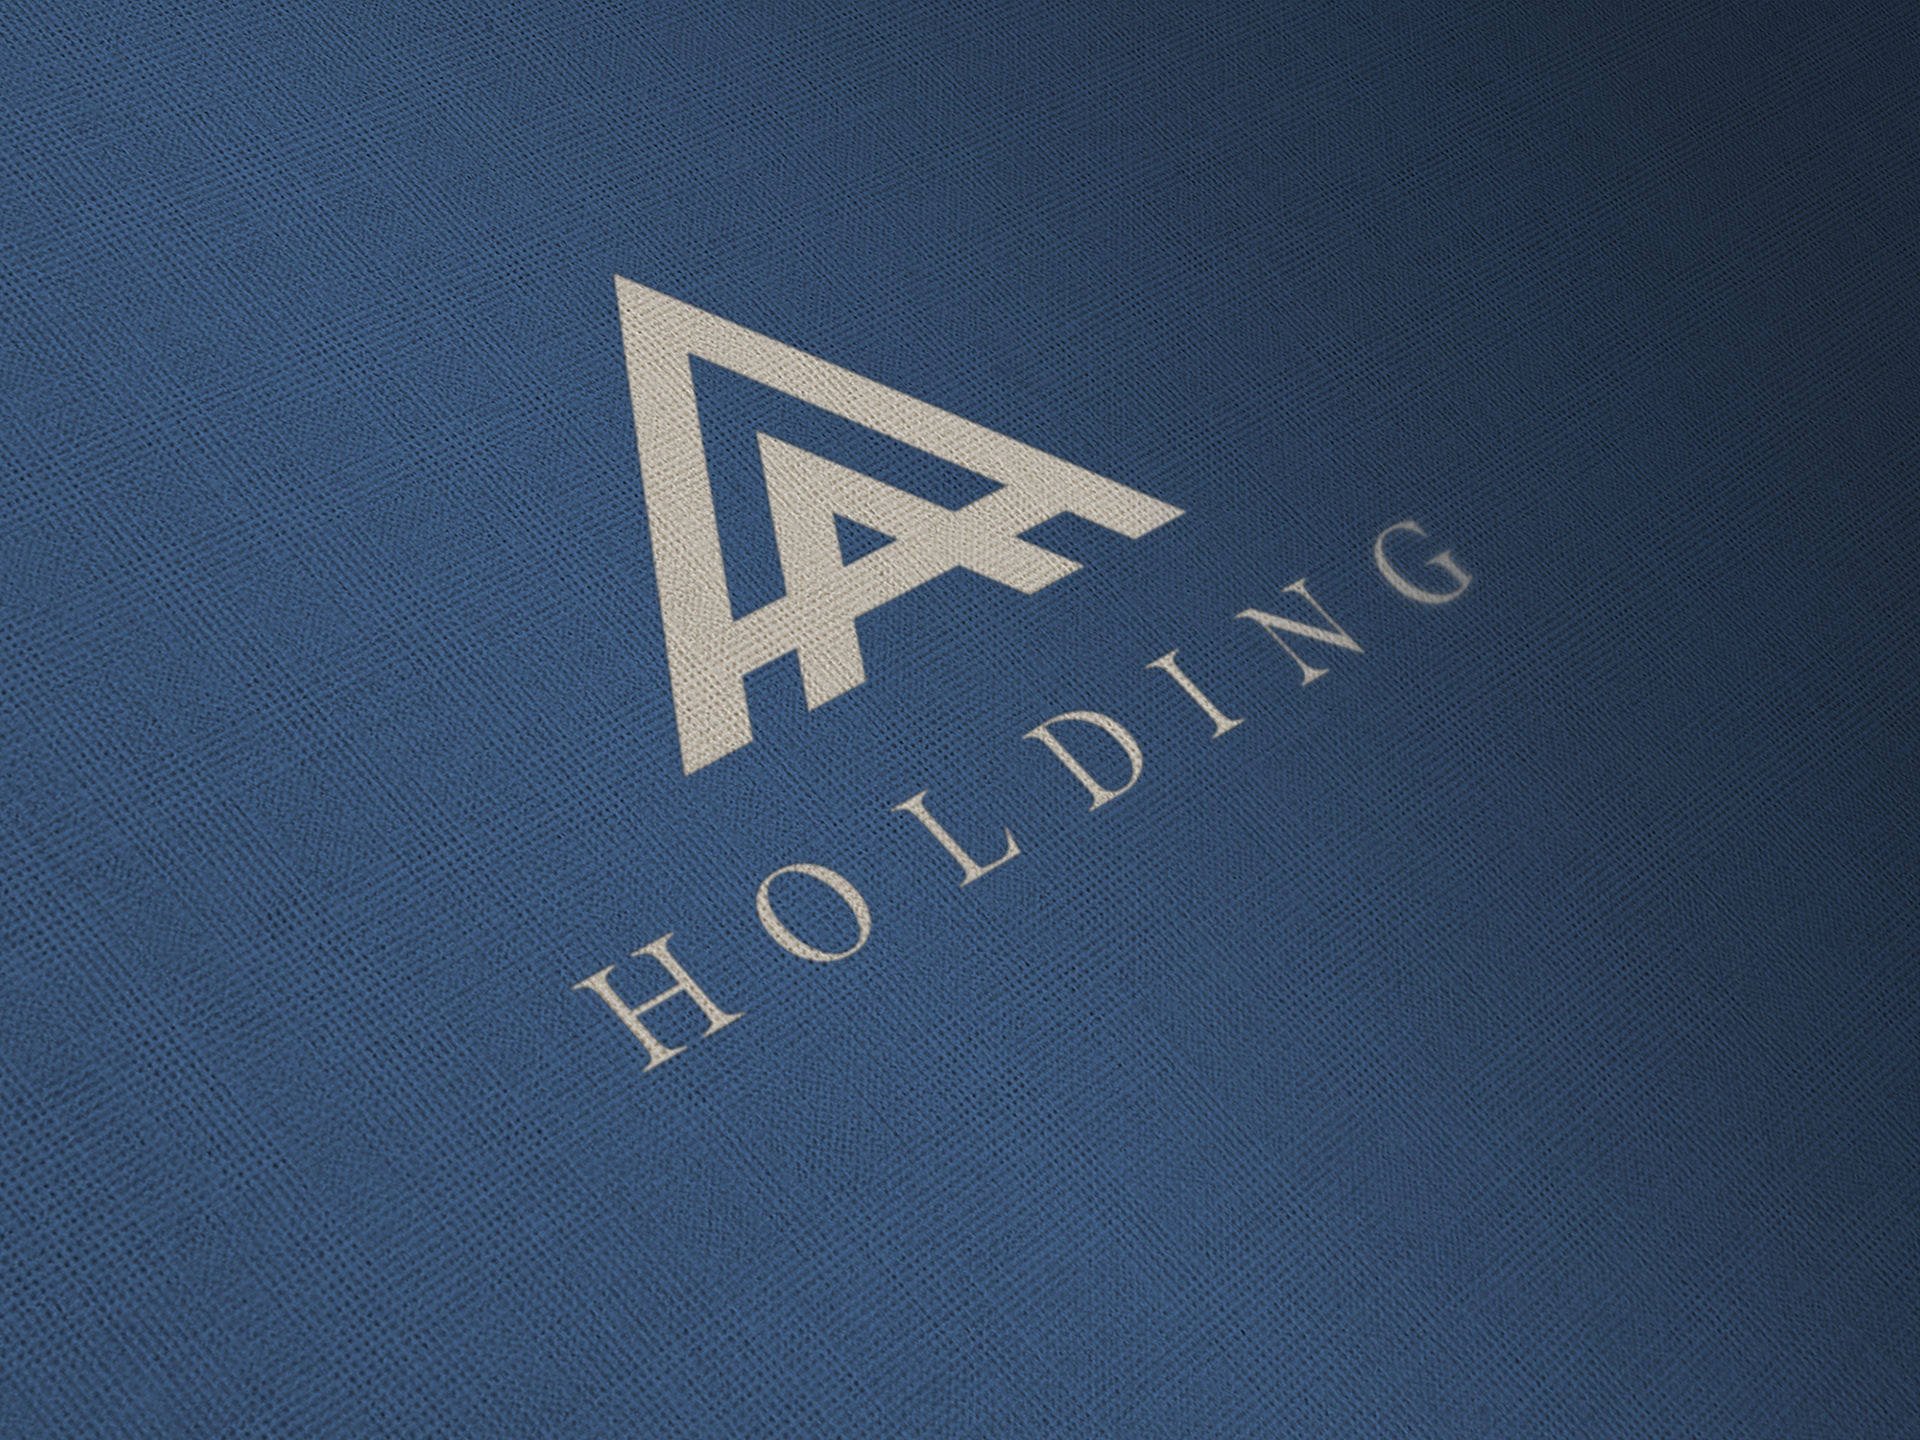 AA Holdings To Sponsor The Petroleum Club's Annual Business Meeting